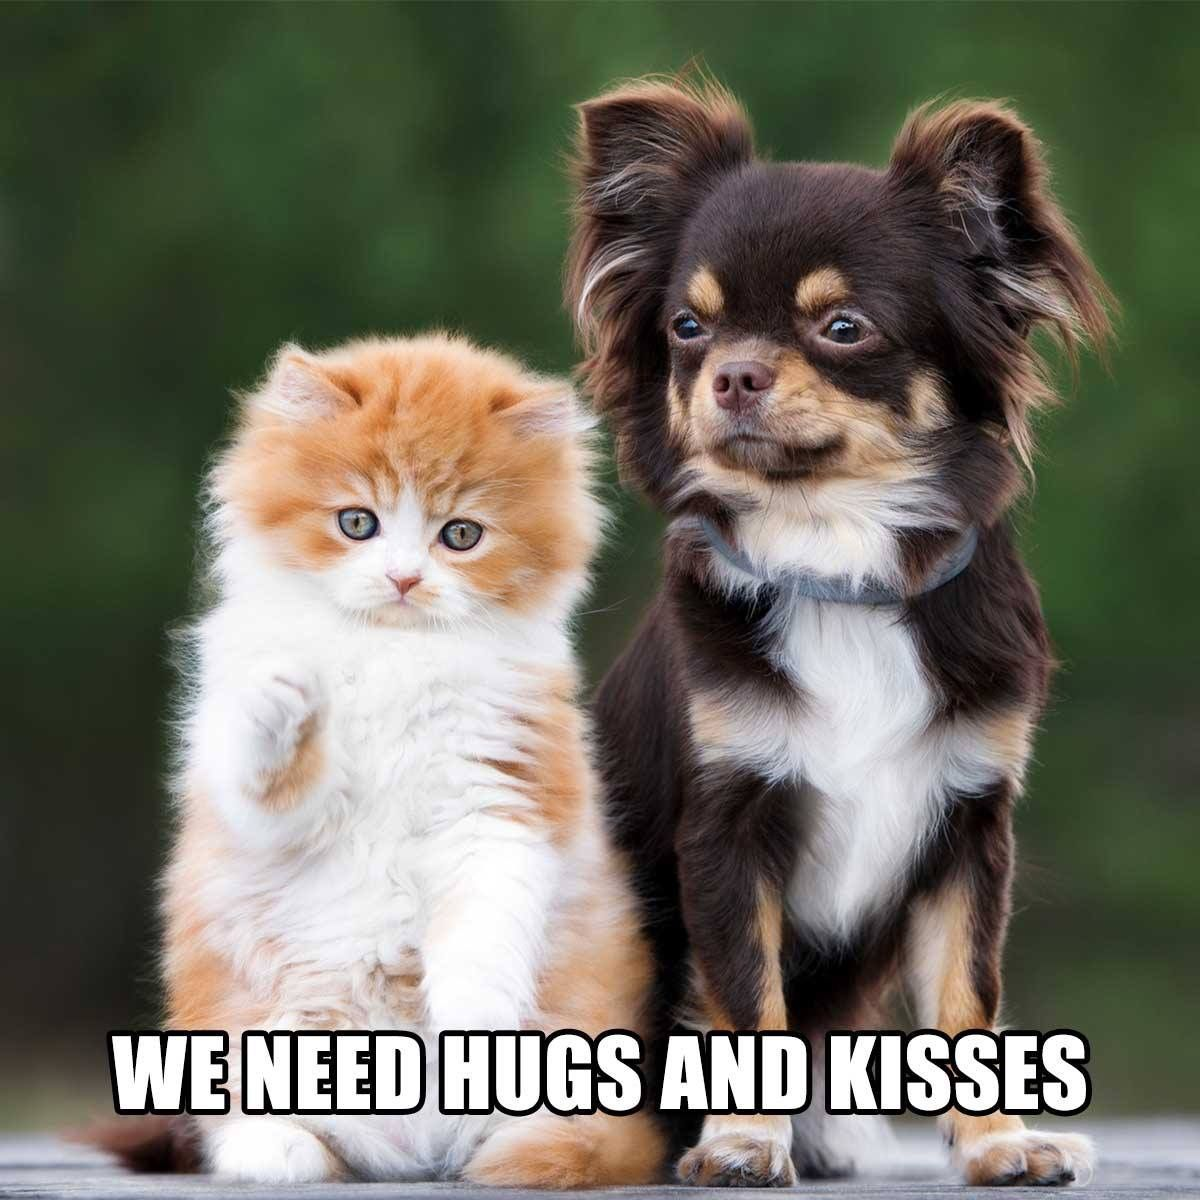 Pin by Carol Valeri on Just too cute puppy love Dog cat